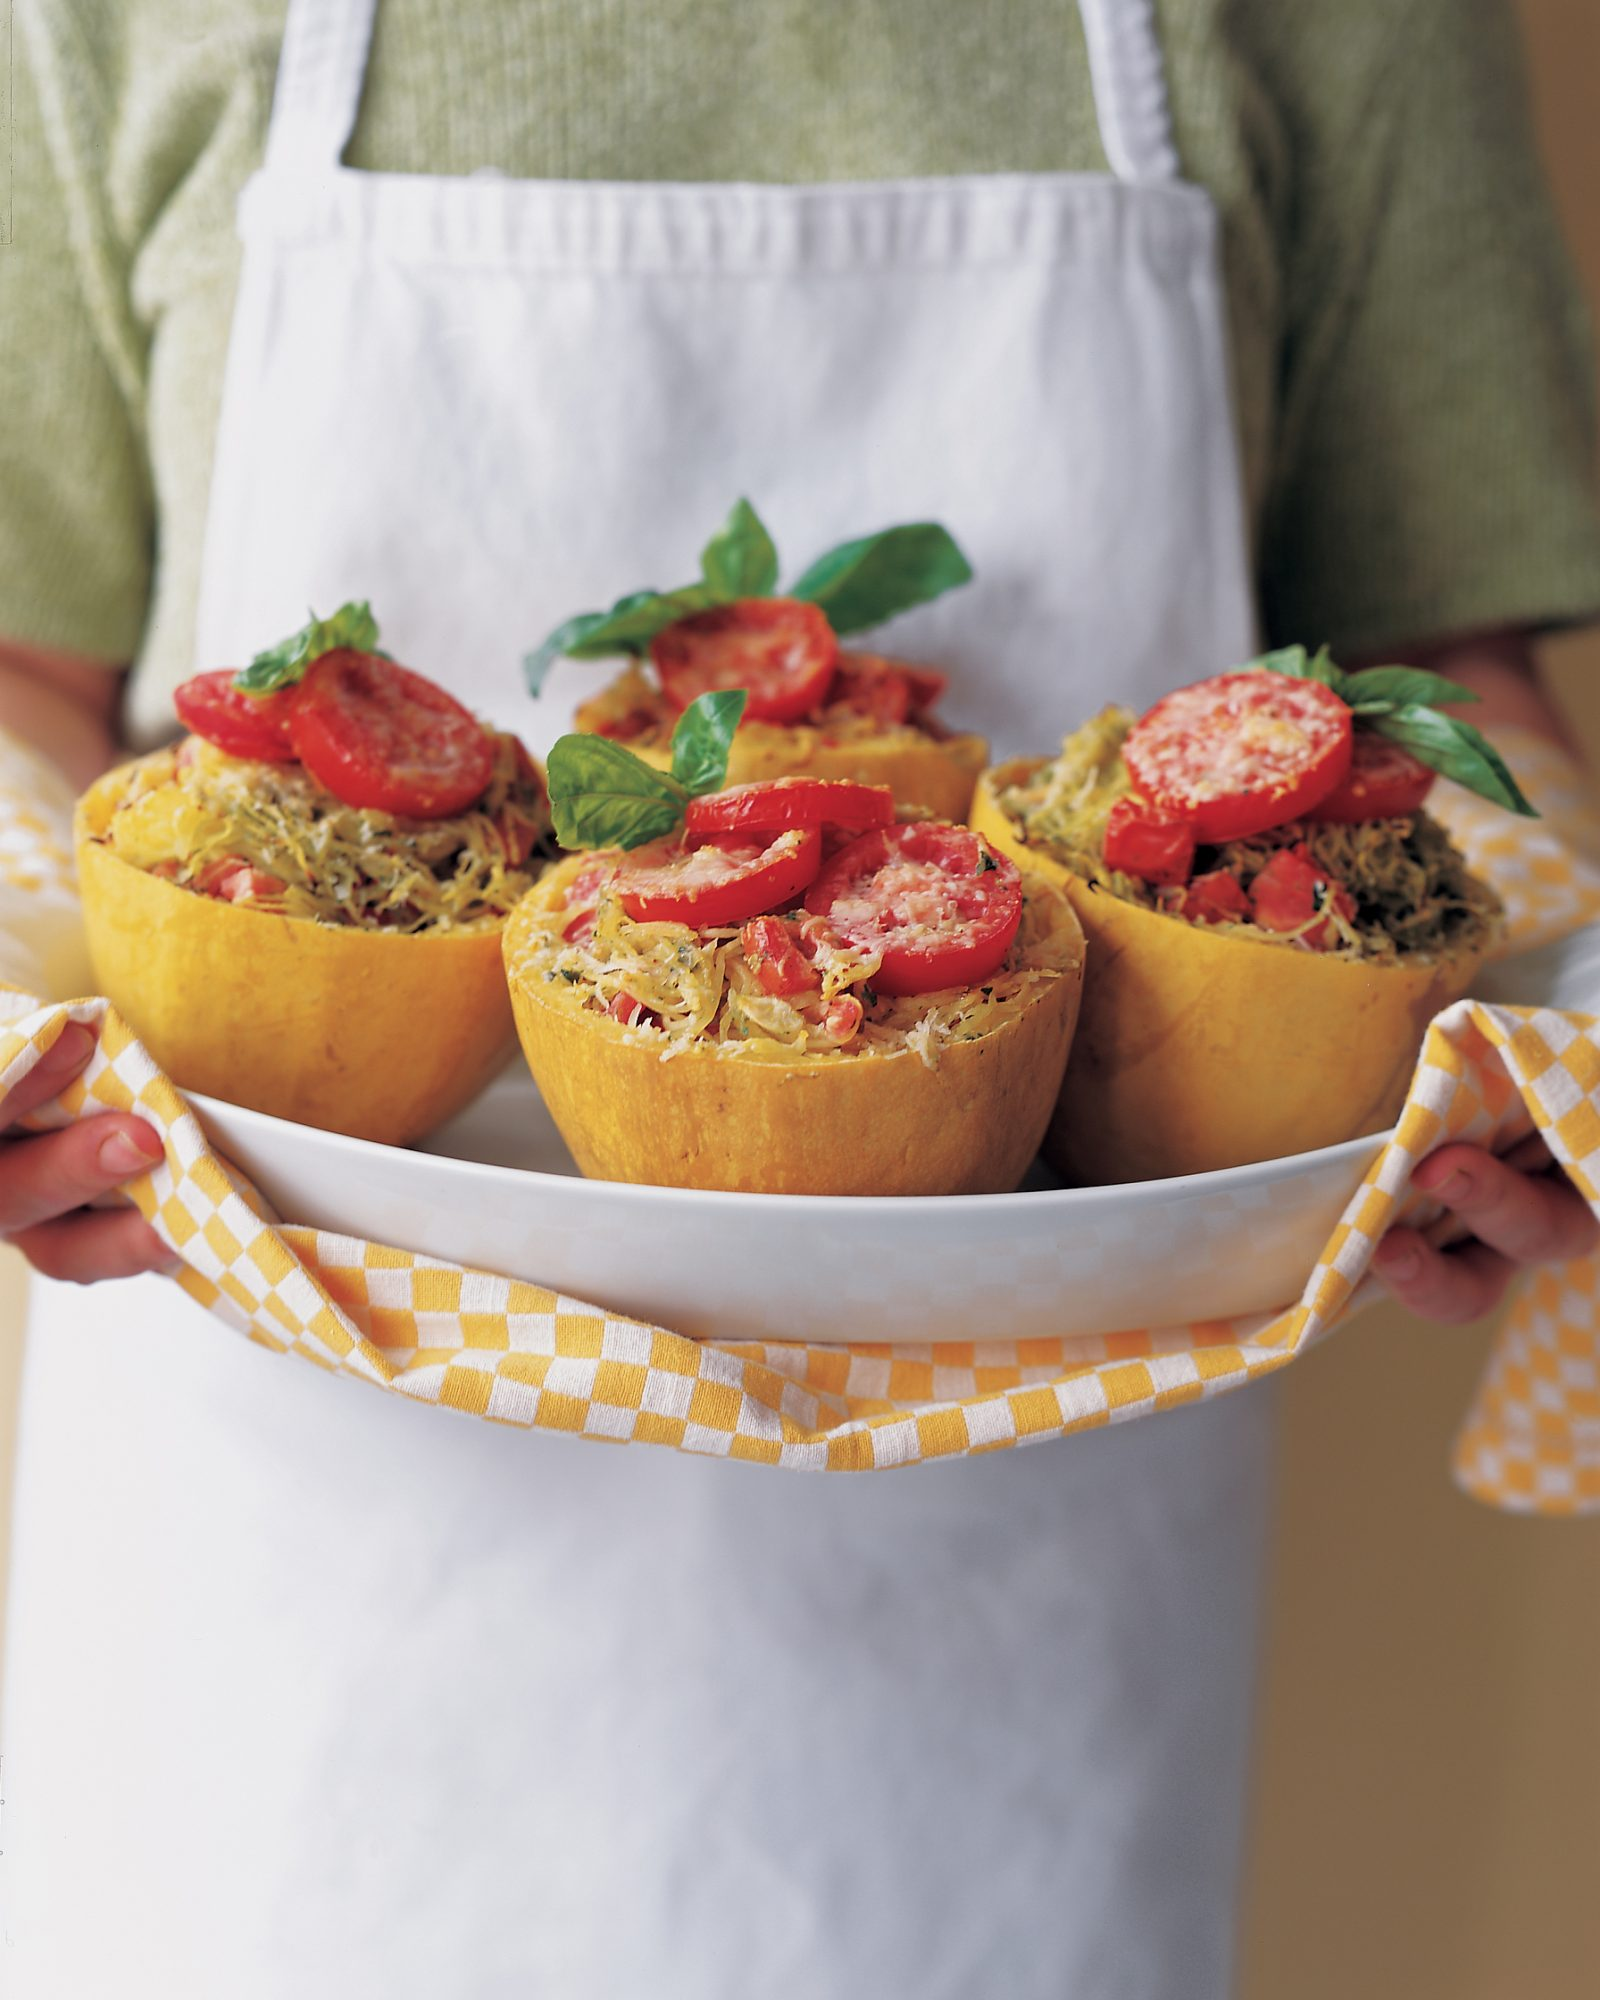 Halved spaghetti squash are filled with the best ingredients from the farmers' market and then baked for a dramatic entrée that sings of summer.